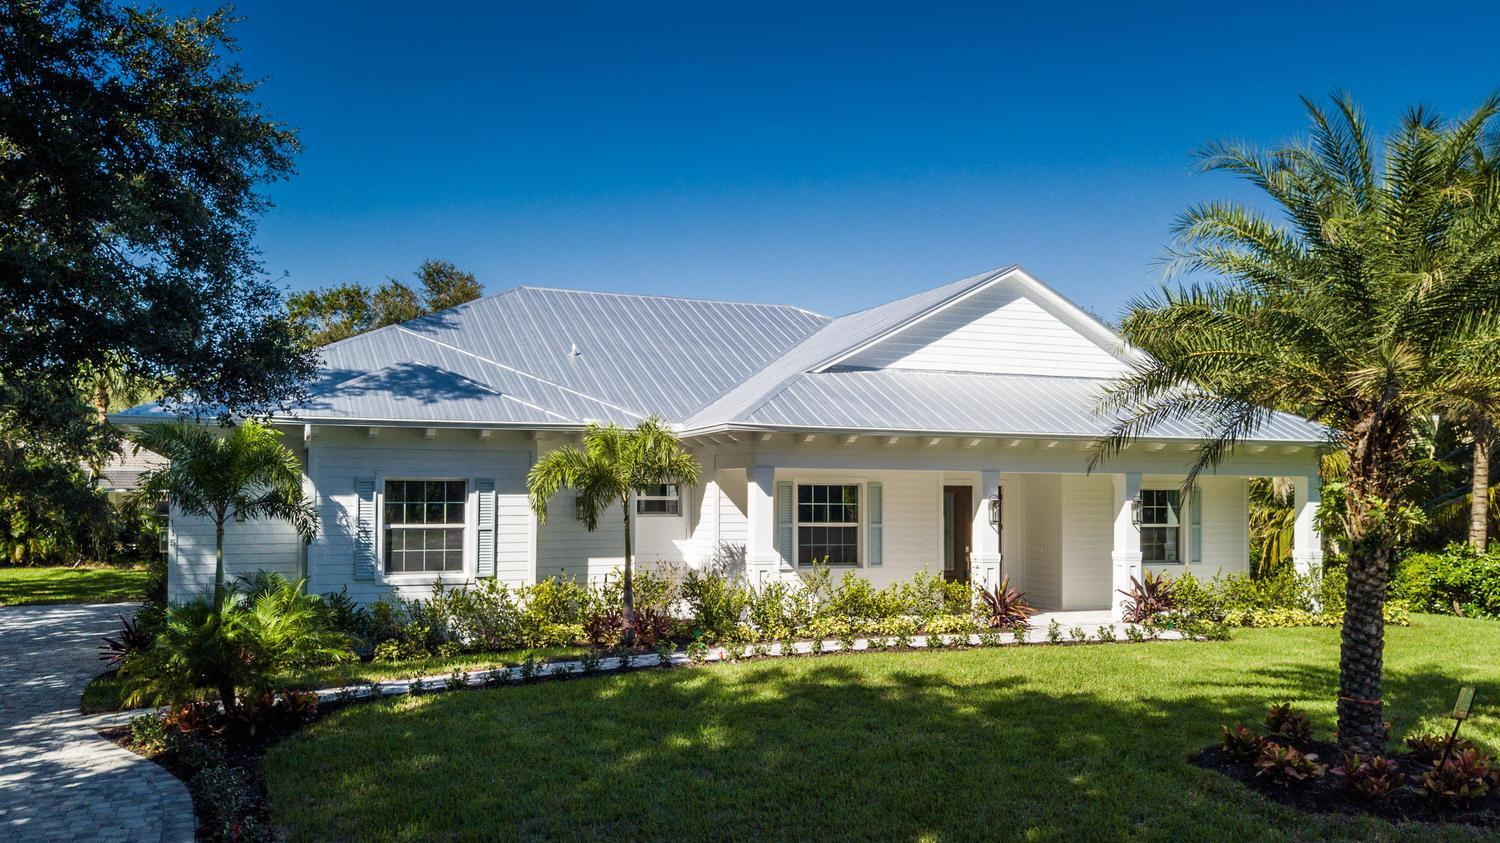 'Medalist Building Group' by Medalist Building Group, LLC in Martin-St. Lucie-Okeechobee Counties